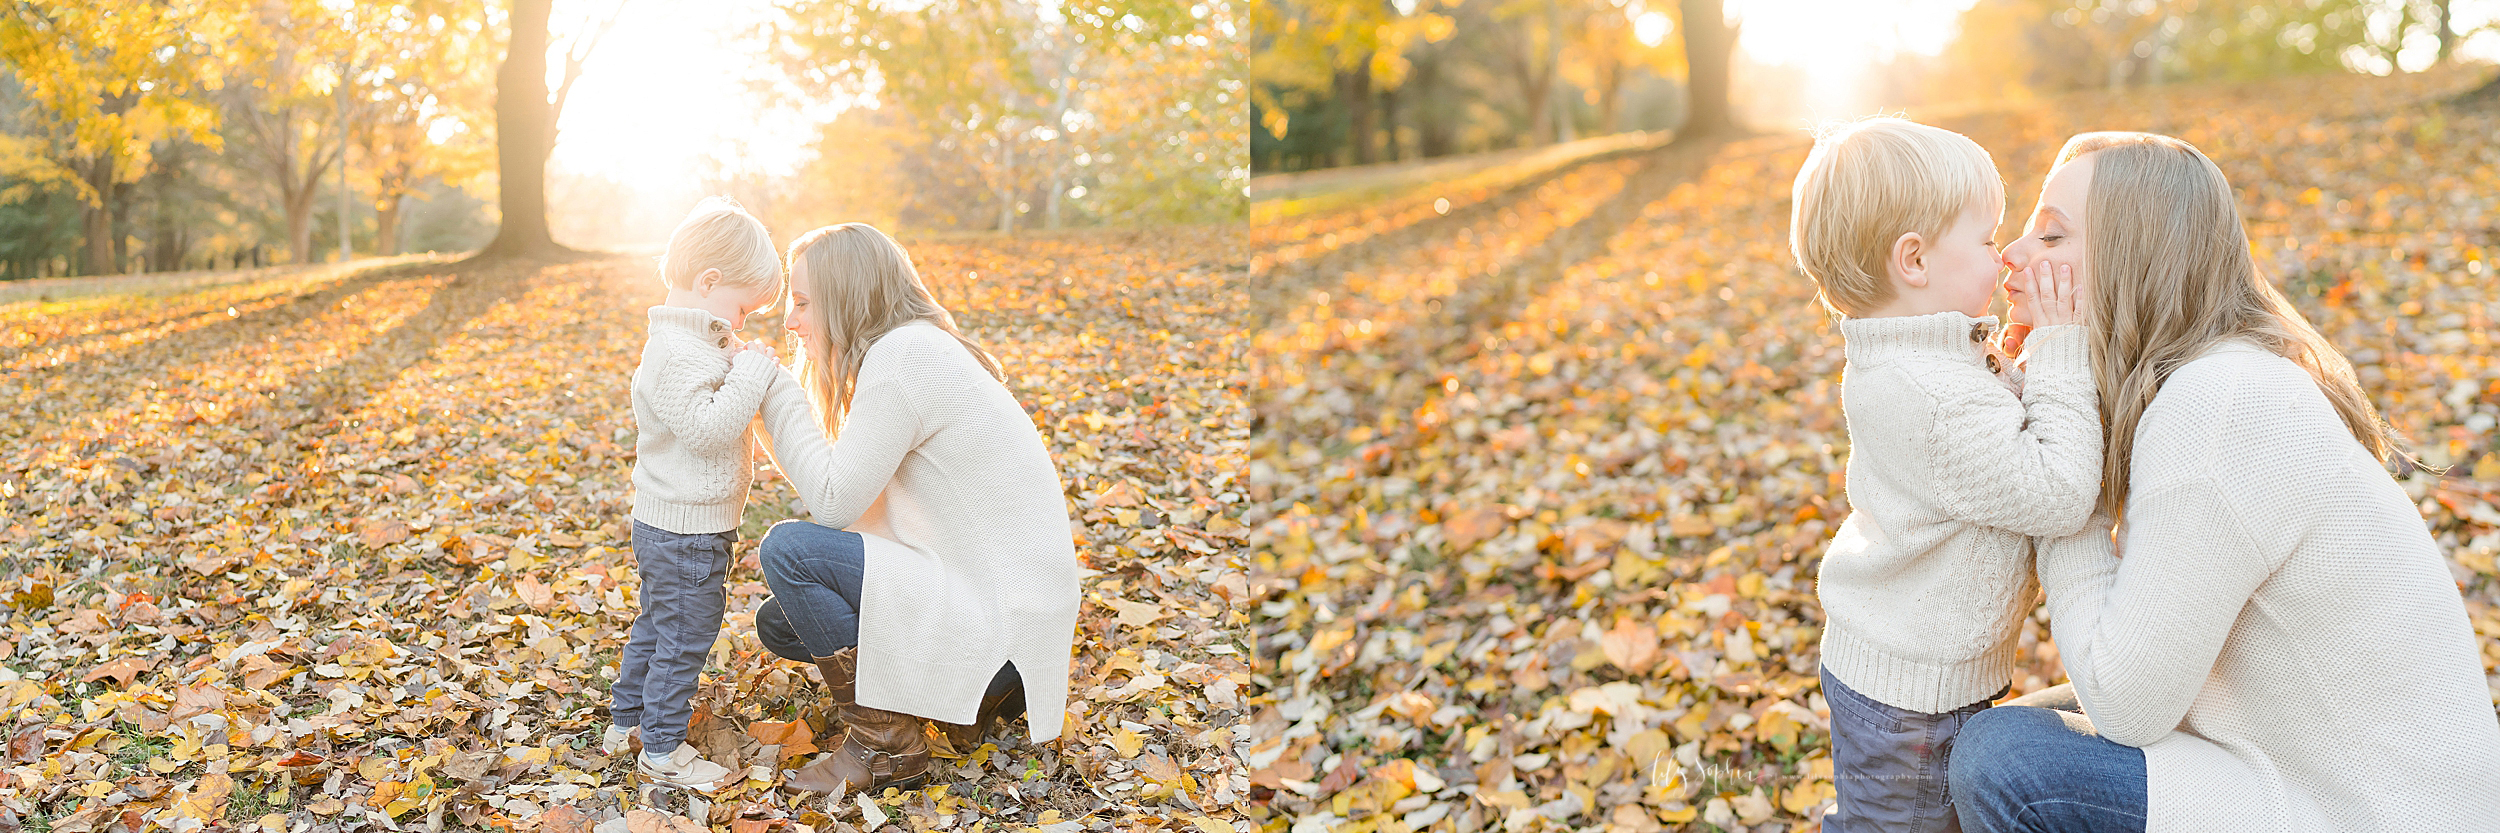 atlanta-midtown-brookhaven-decatur-lily-sophia-photography-photographer-portraits-grant-park-family-sunset-fall-outdoor-session-brothers-toddler-baby_0148.jpg